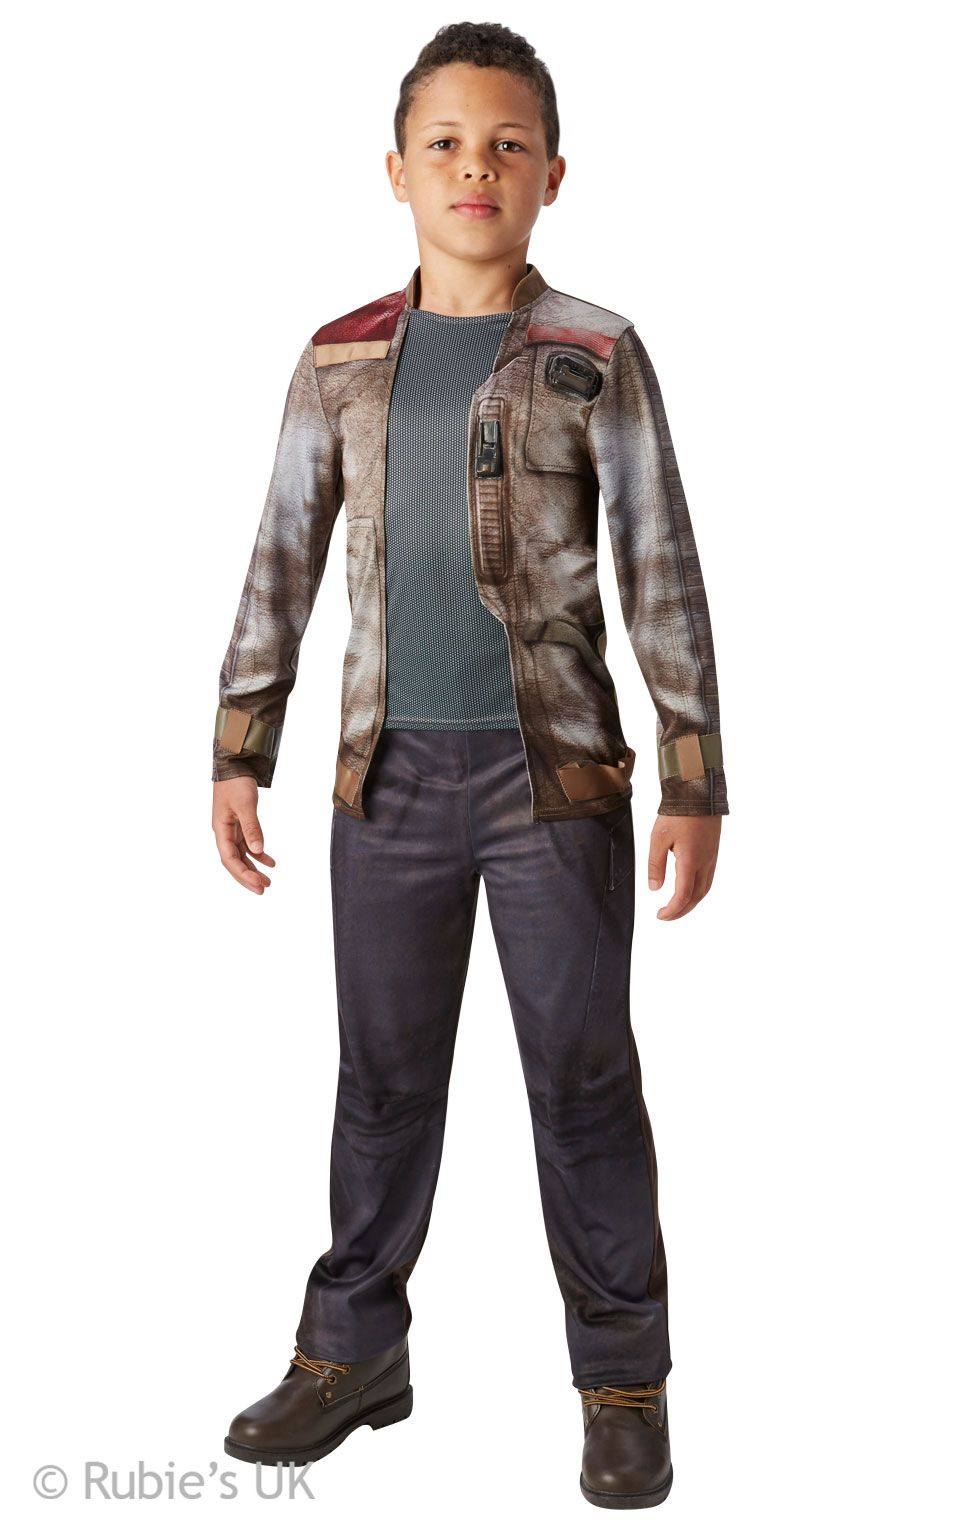 Deluxe Finn Boys Fancy Dress Disney Star Wars Force Awakens Teens Costumes for those avid Star Wars Fans. The Force Awakens Costumes instock and ready to ...  sc 1 st  Pinterest & Deluxe Finn Boys The Force Awakens Star Wars Costume | Pinterest ...